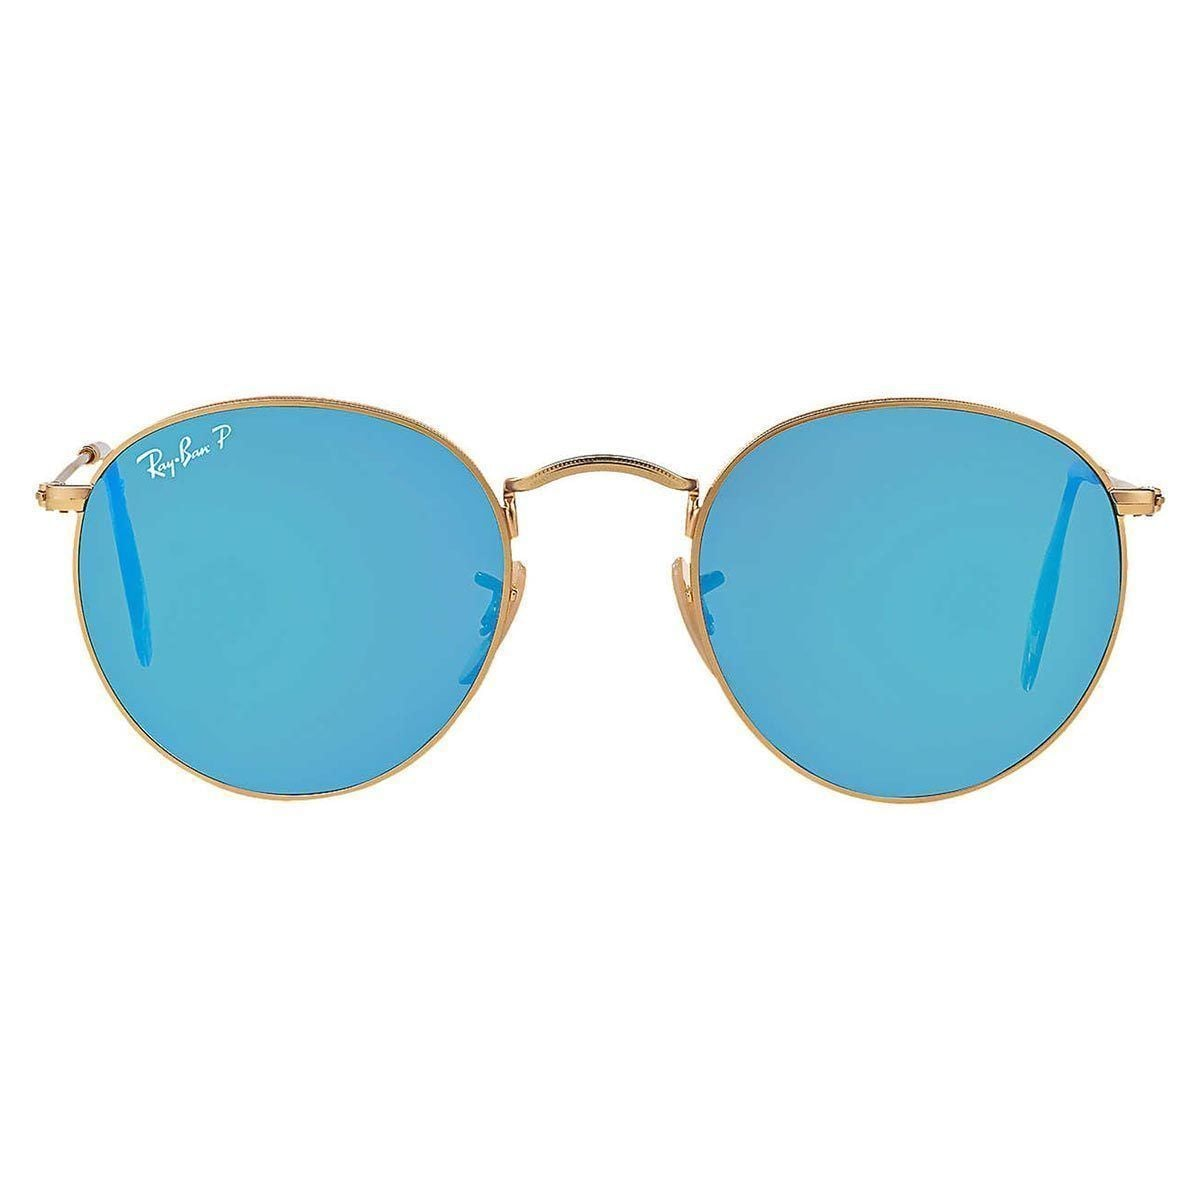 550d0cb430 Shop Ray-Ban RB3447 112 4L Unisex Round Gold Frame Polarized Blue Flash  Lens Sunglasses - Free Shipping Today - Overstock - 15002896